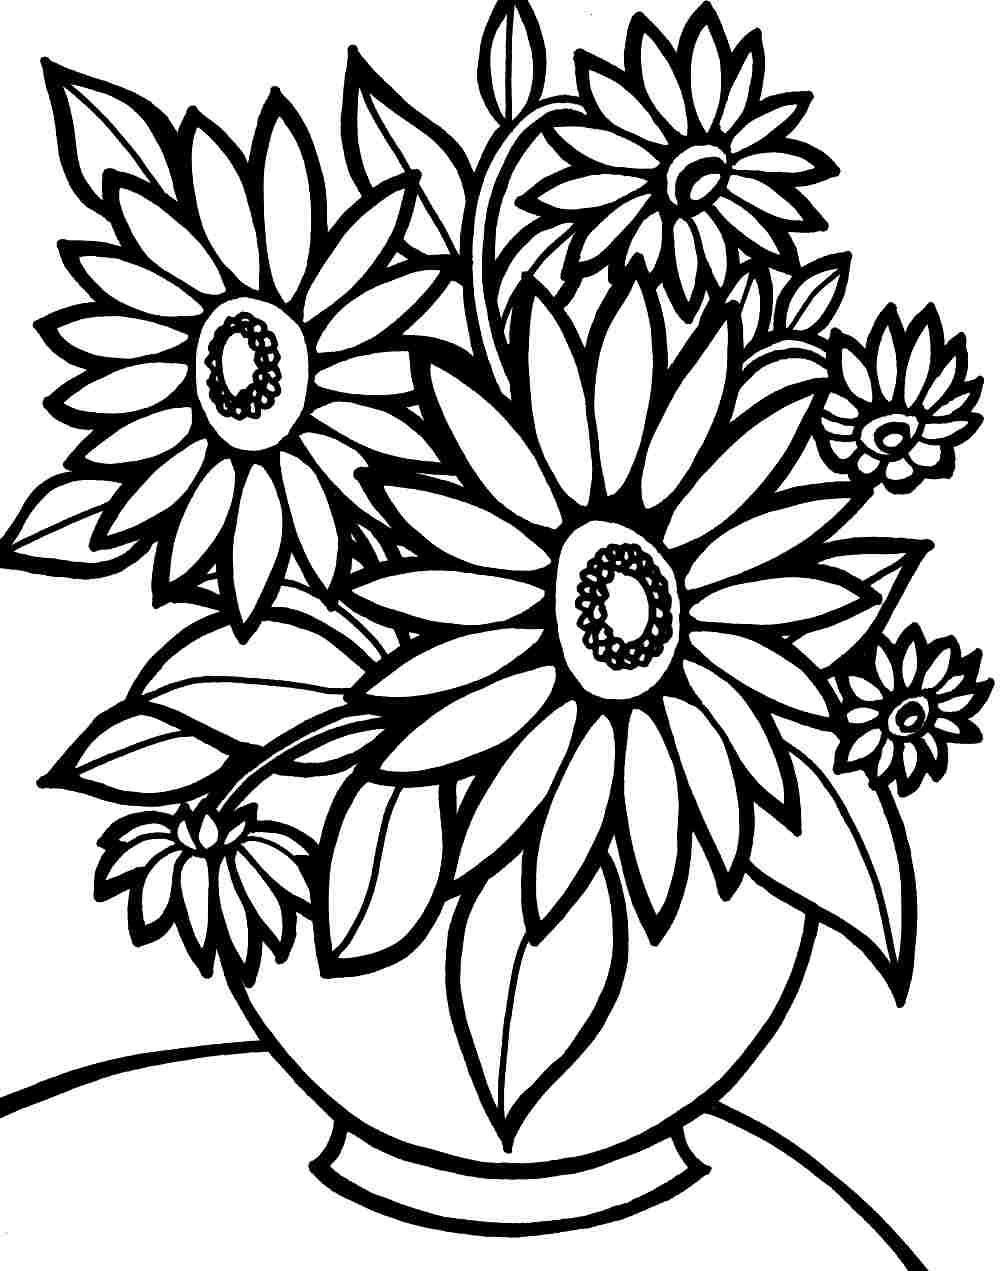 Colouring in pictures of flowers - Colouring Pages Bouquet Flowers Printable Free For Kids Girls 45436